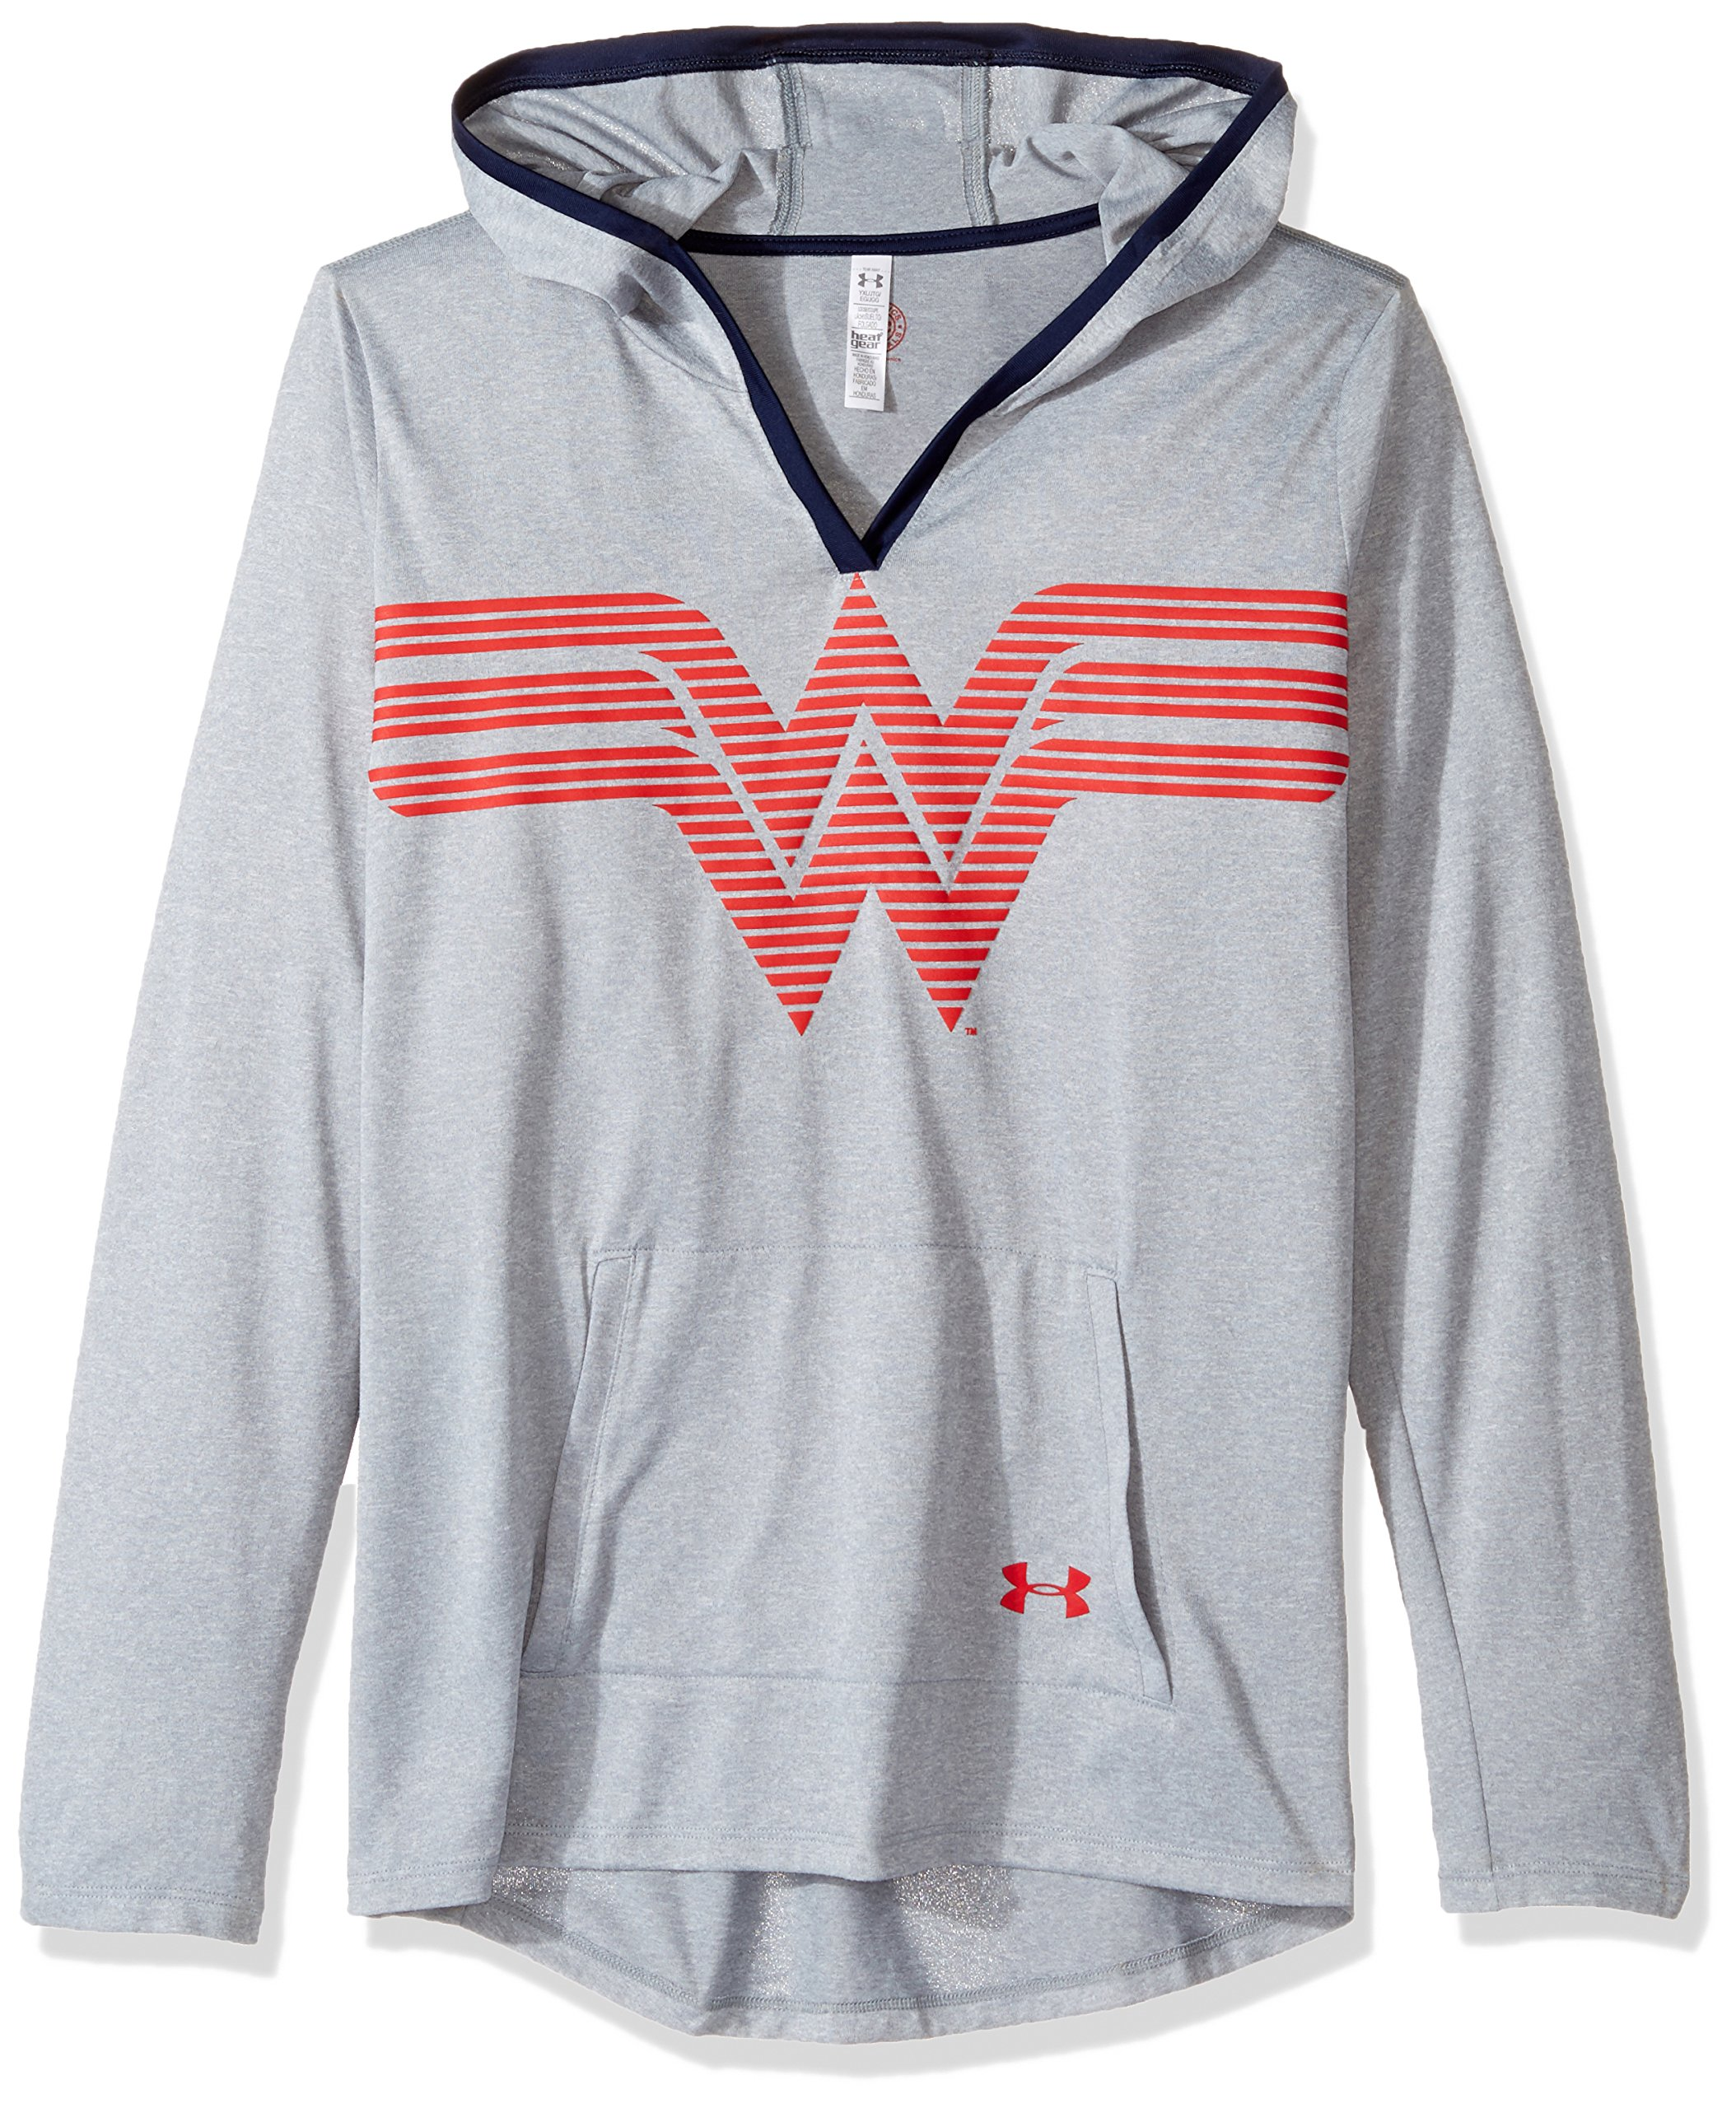 Under Armour Girls' Alter Ego Wonder Woman UA Tech Hoodie,Steel (035)/Red, Youth Small